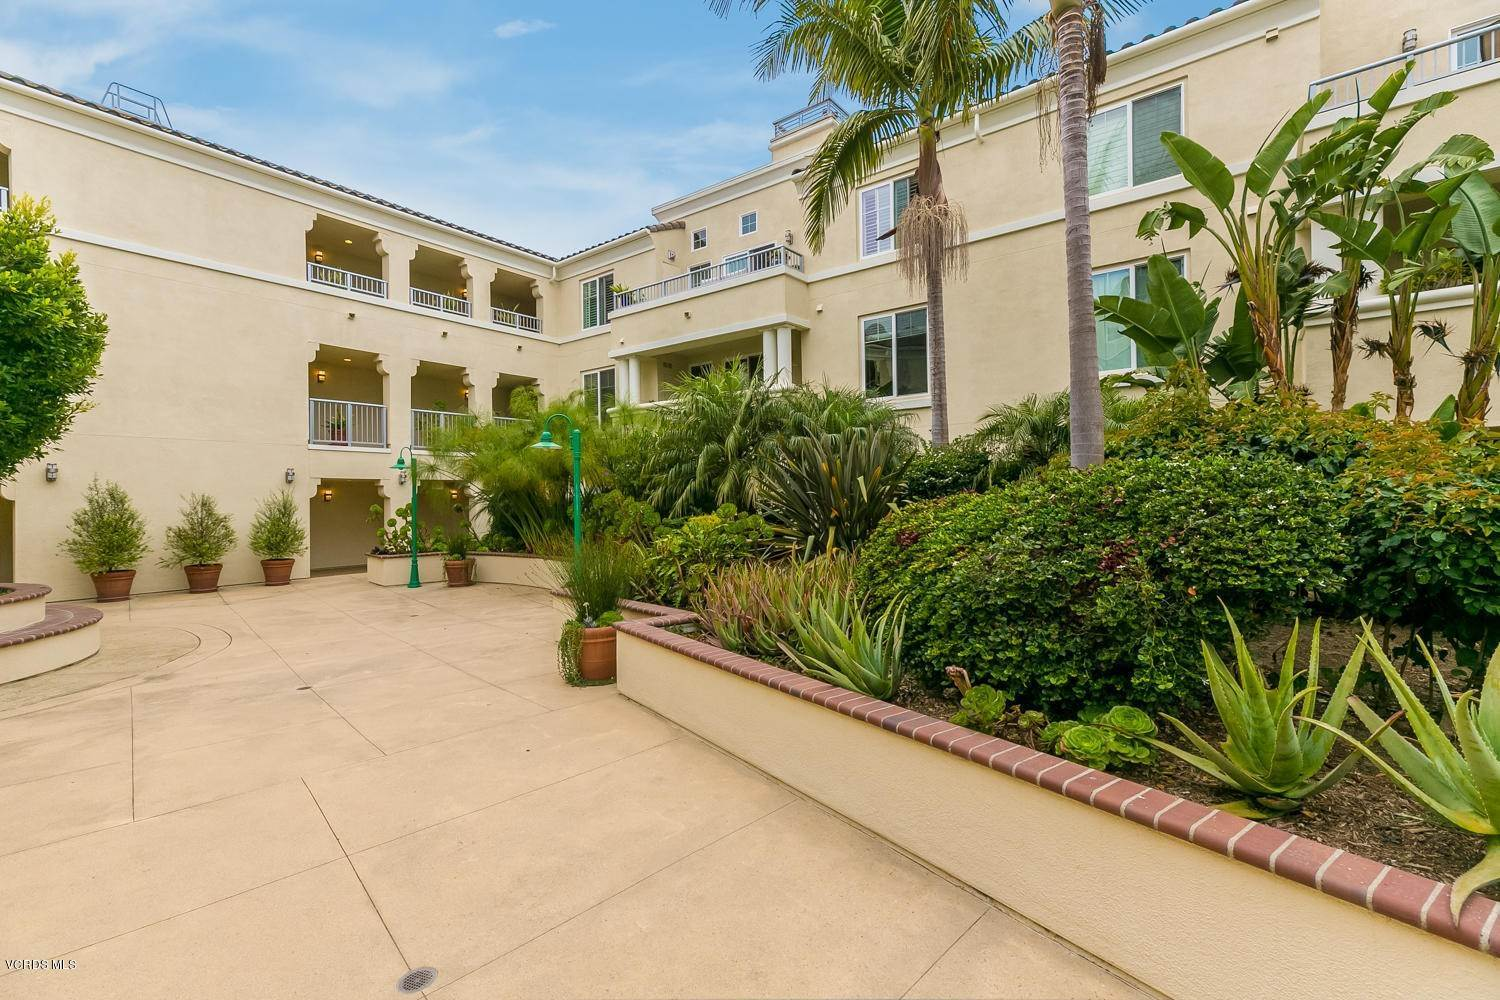 25. Condominiums for Sale at 4366 Tradewinds Drive Oxnard, California 93035 United States